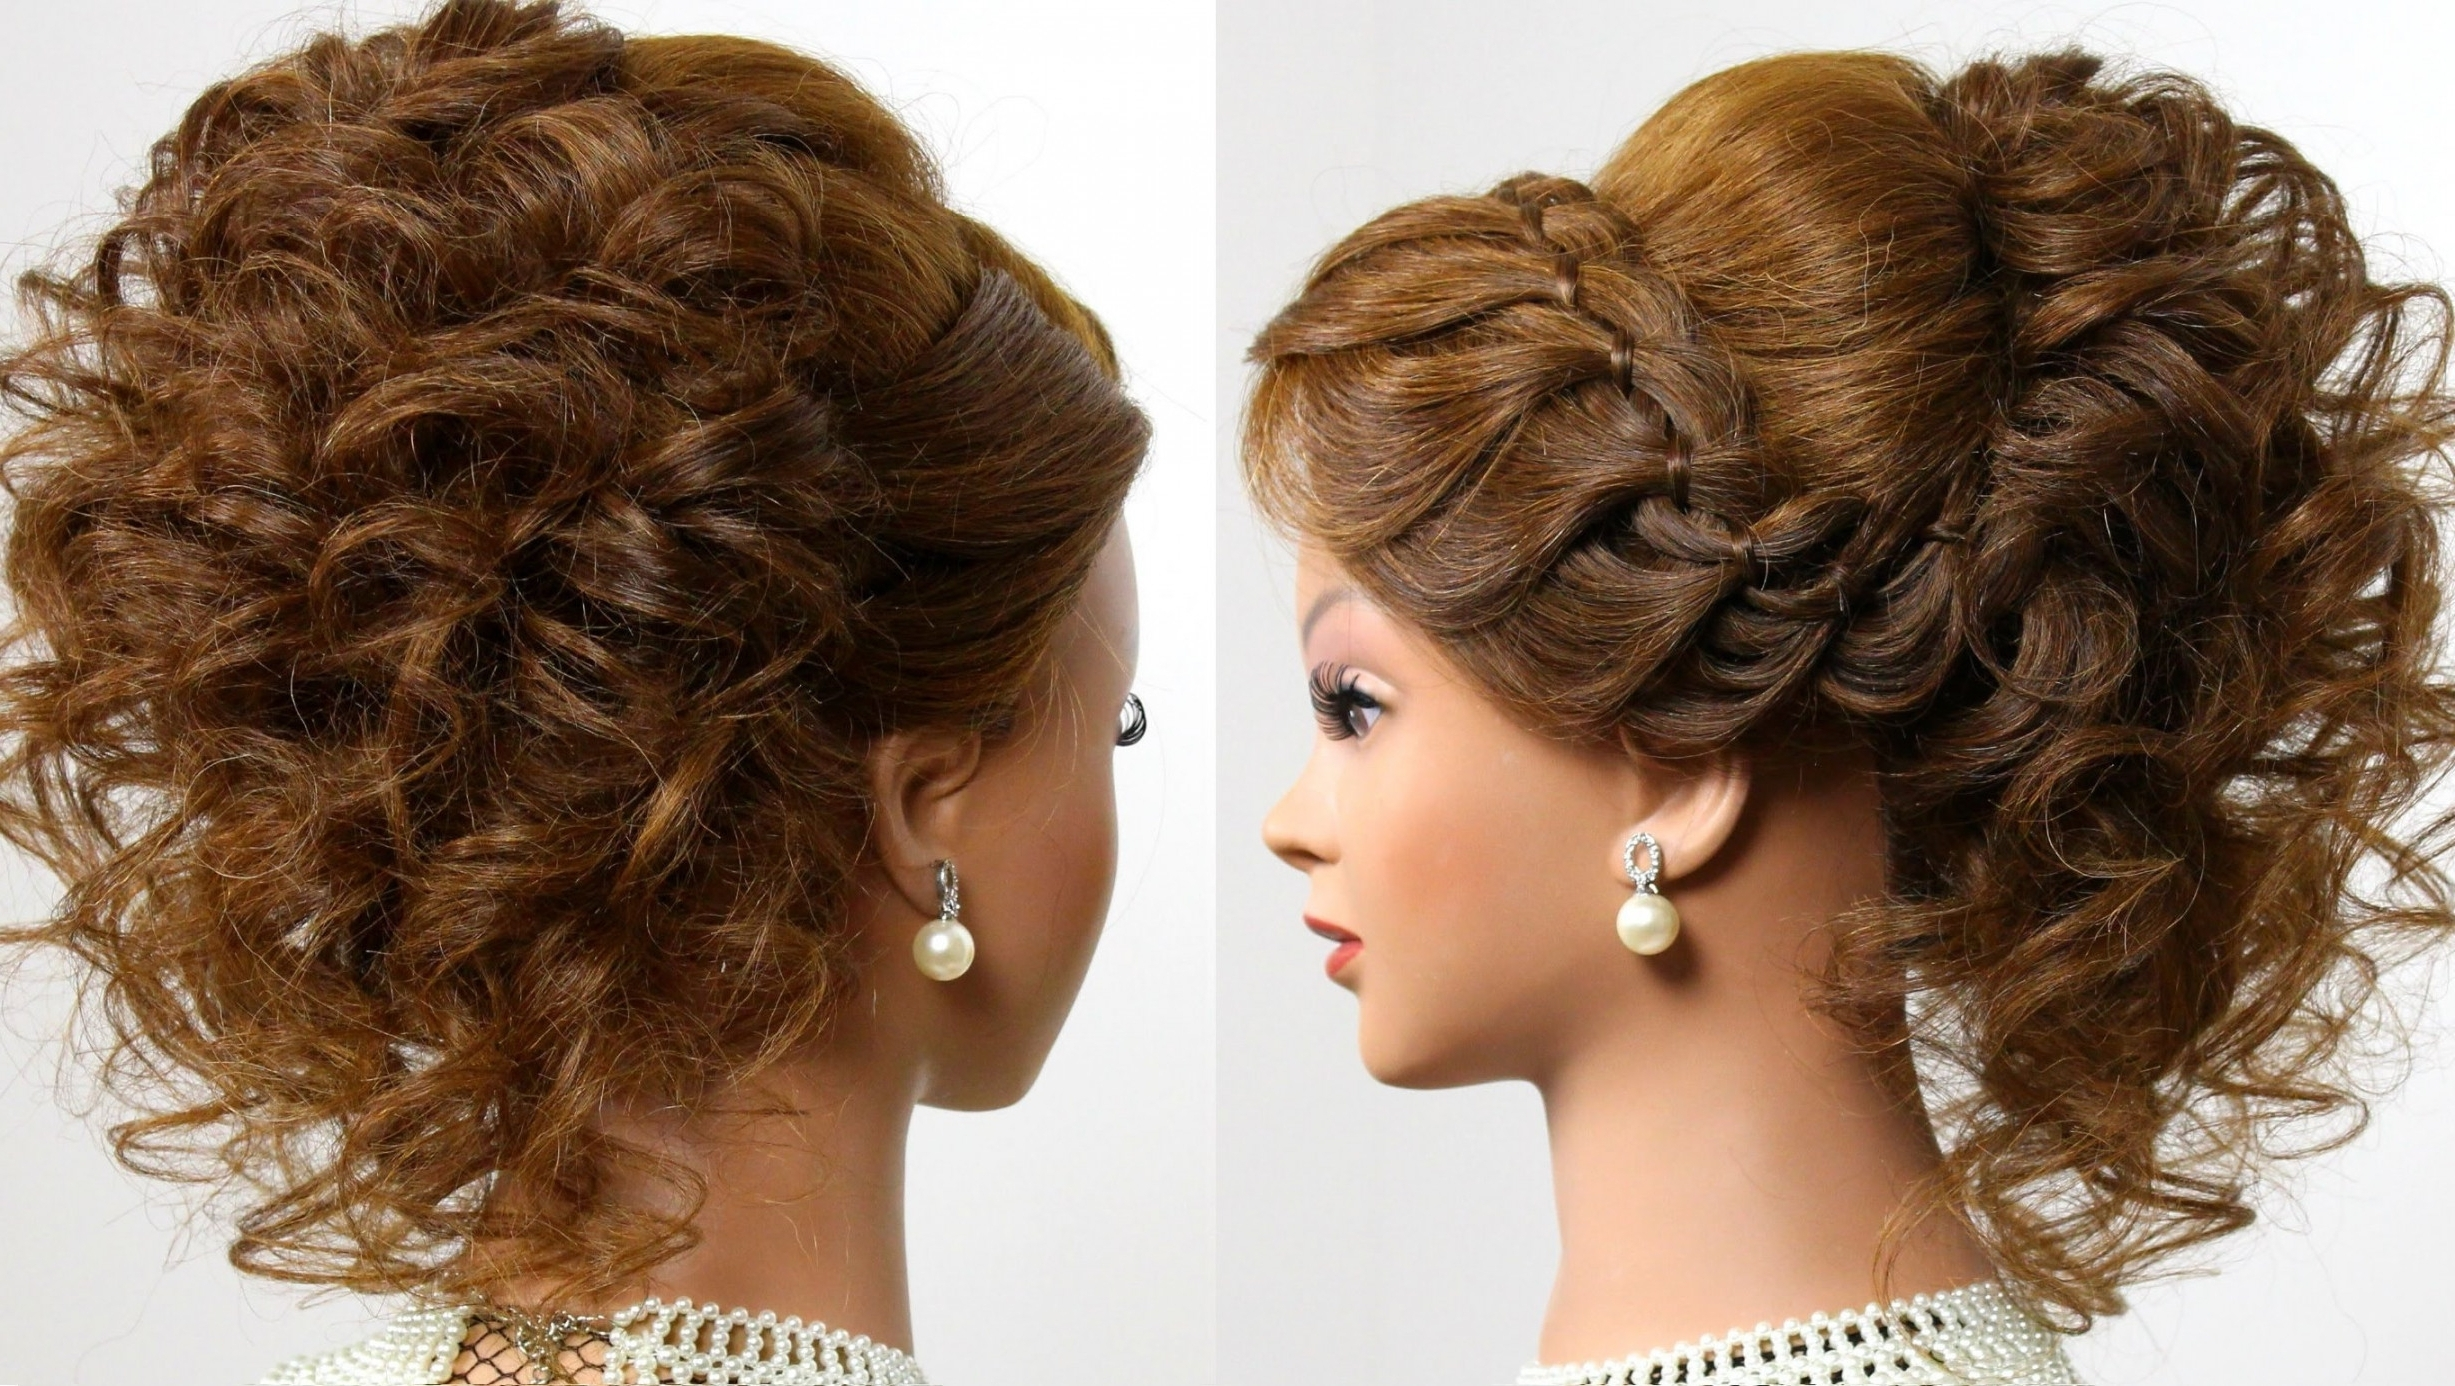 Prom Wedding Updo Romantic Hairstyle For Long Medium Hair Best For Wedding Updo Hairstyles For Medium Hair (View 12 of 15)